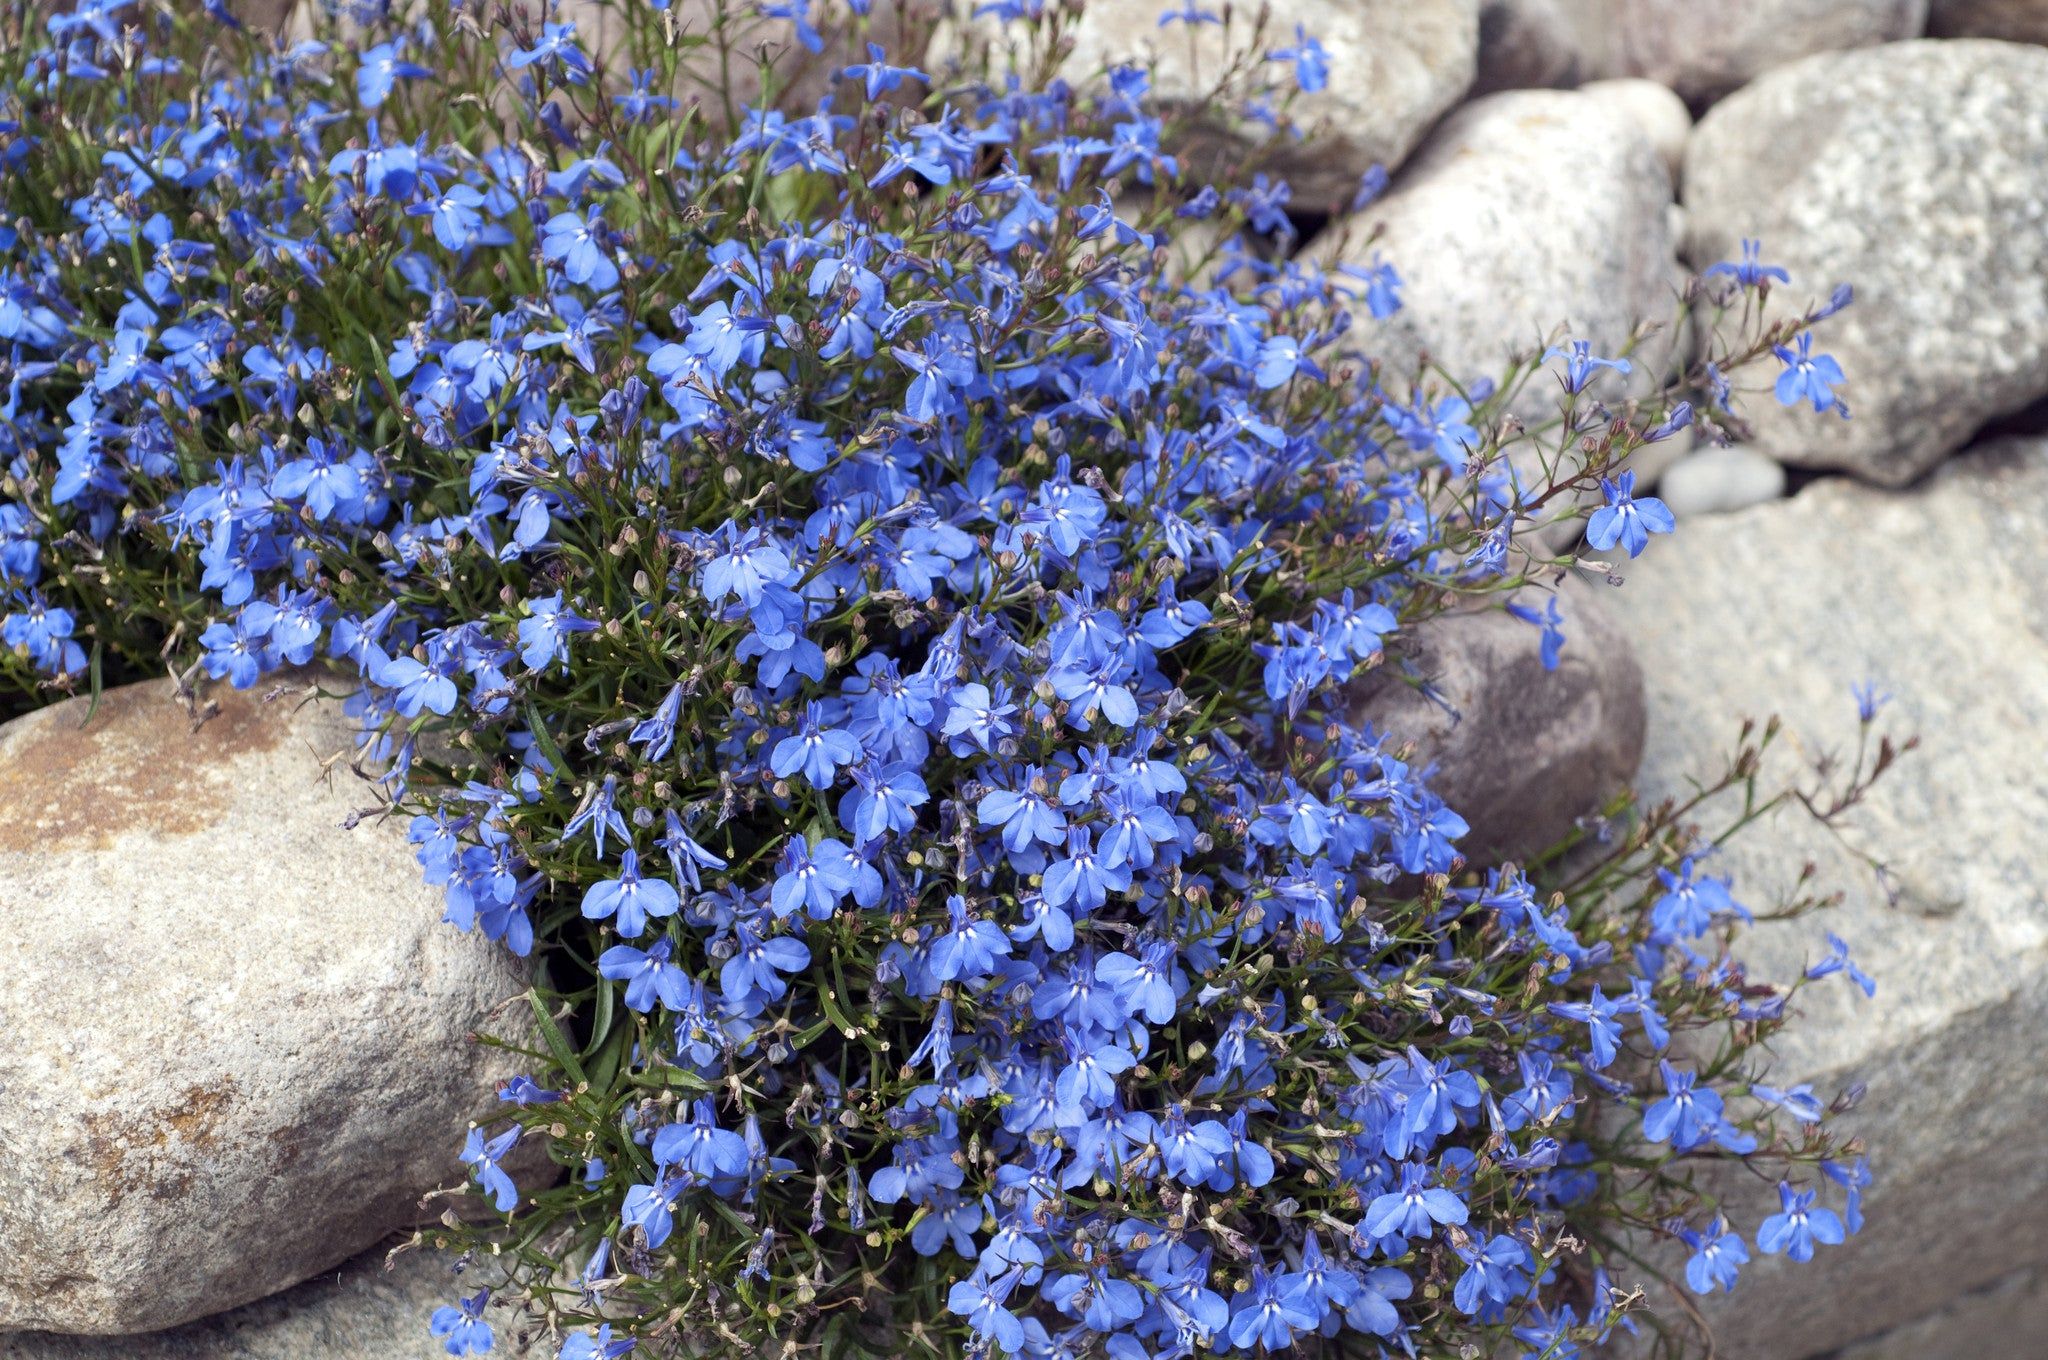 100 Electric Blue & White Half Moon Lobelia Erinus Flower Seeds From The Dirty Gardener